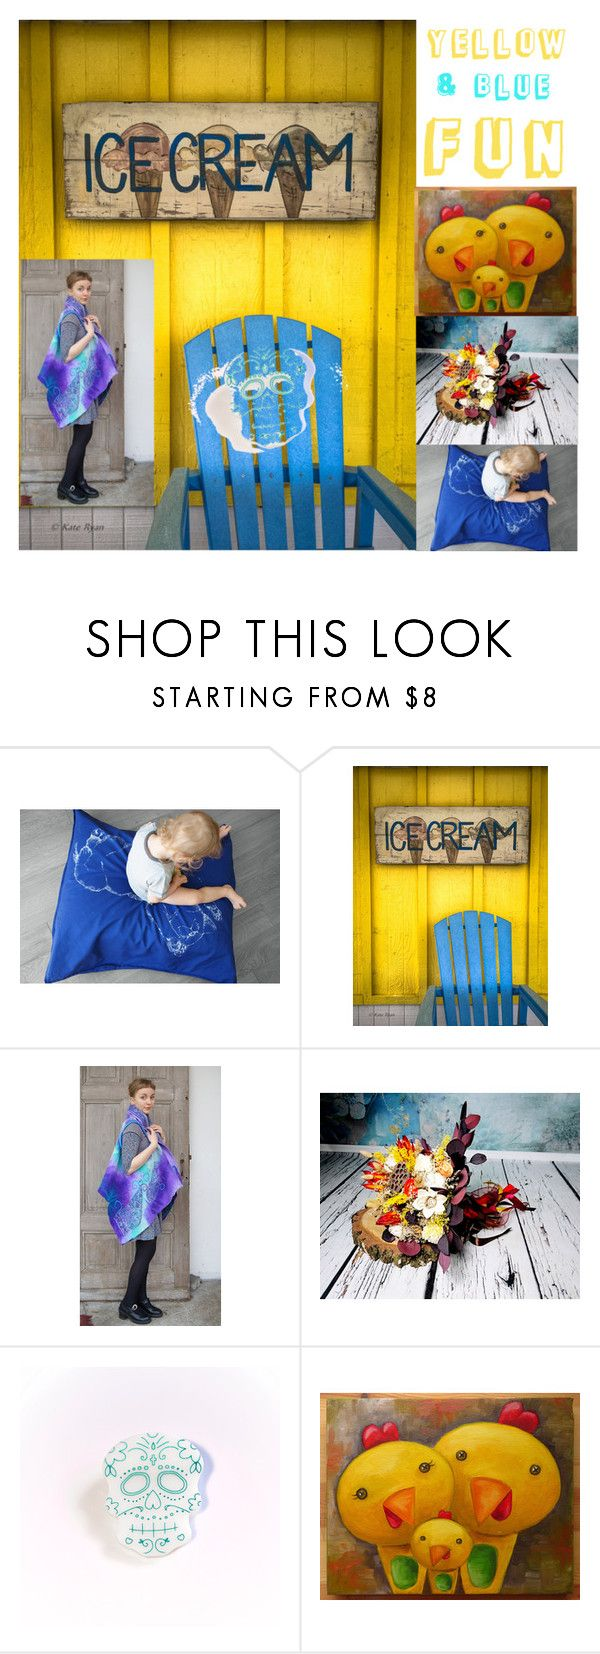 """Yellow and blue FUN!"" by kropkadesign ❤ liked on Polyvore featuring interior, interiors, interior design, home, home decor, interior decorating and Sola"